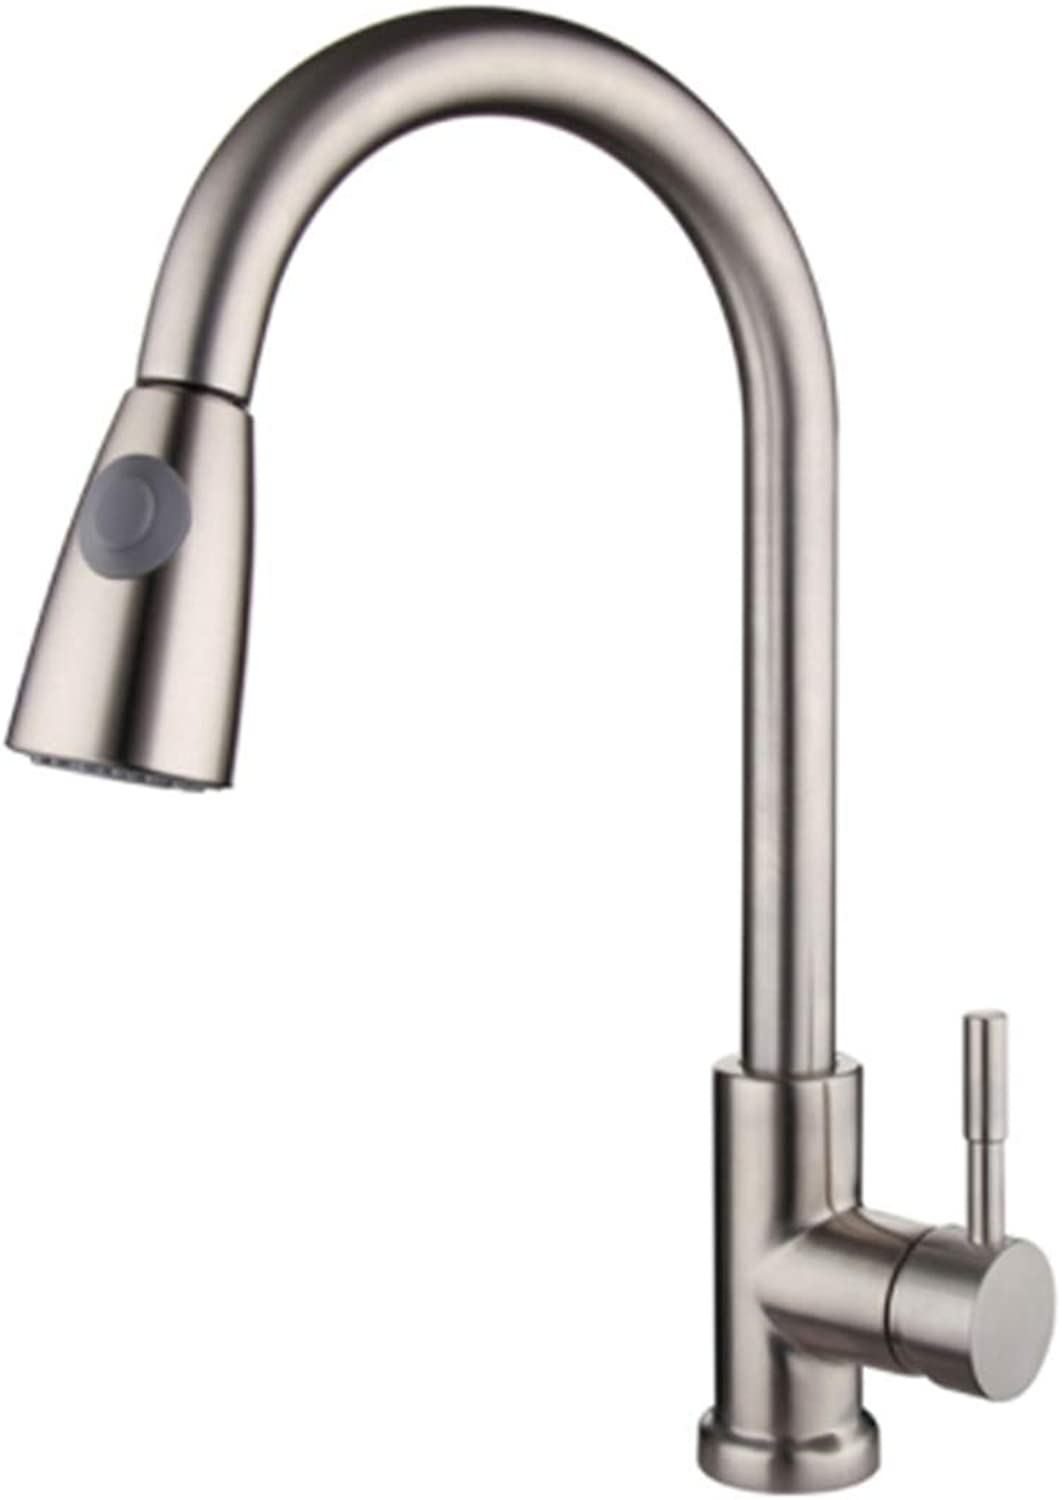 Taps Kitchen Basin Mixer Pull Out Mixerpull Out Kitchen Faucets 2 Ways Water Outlet Taps Mixer Hot and Cold Faucet Kitchen Single Handle Brushed Finish with Water Pipe